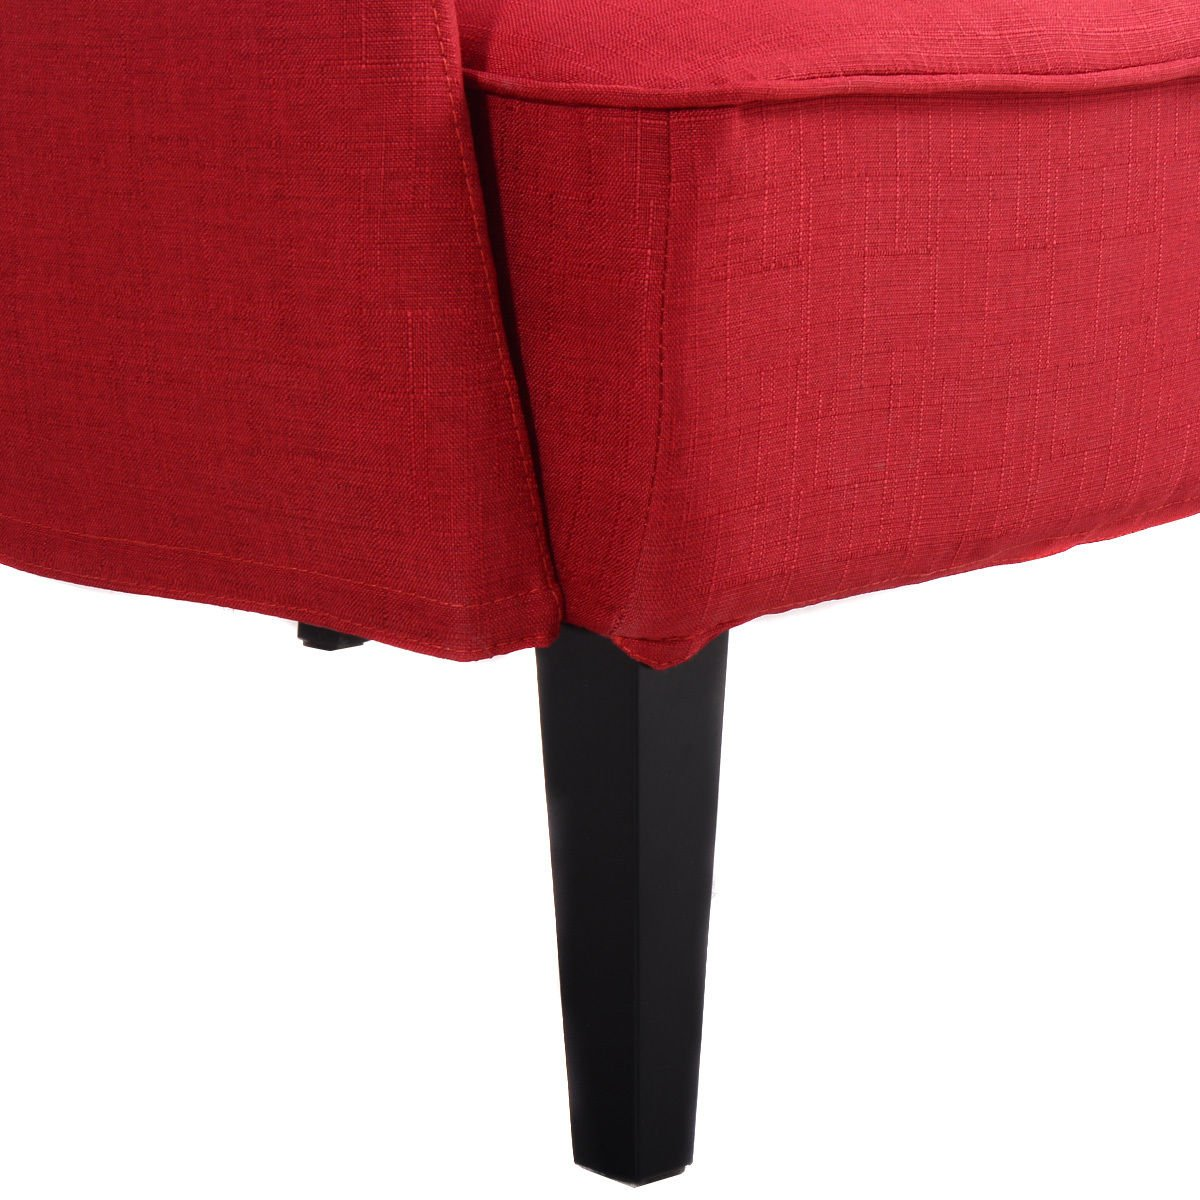 Giantex Modern Upholstered Accent Occasional Chair Roll Arm Living Room Bedroom Wood Leg (Red)